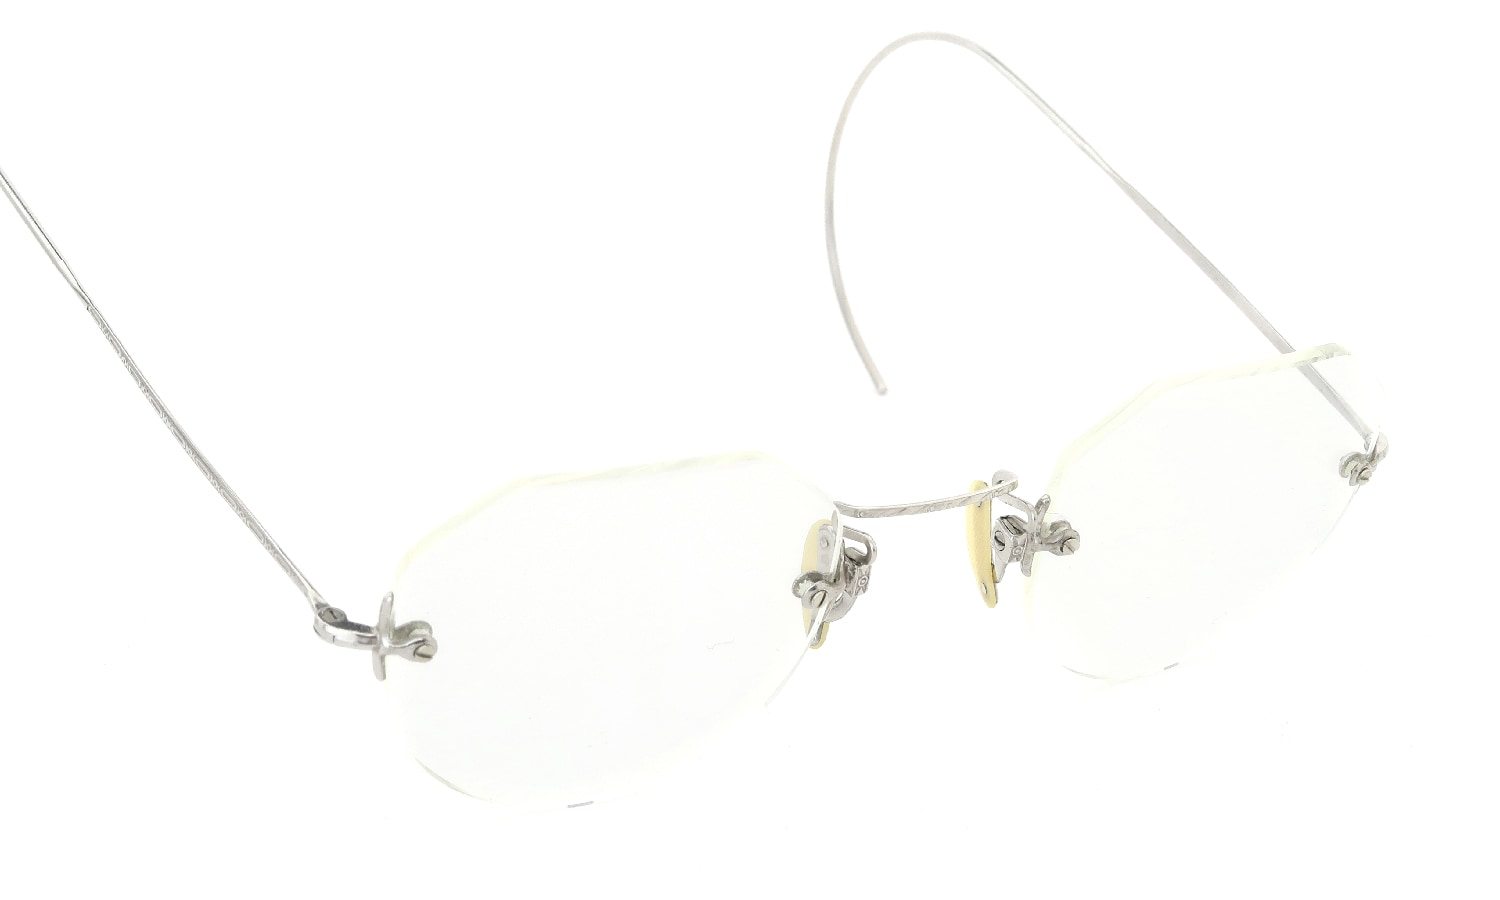 SHUR-ON 1920s RIMLESS CROWN-PANTO 14K-WHITE-GOLD-FILLED BOXED-MOUNTING